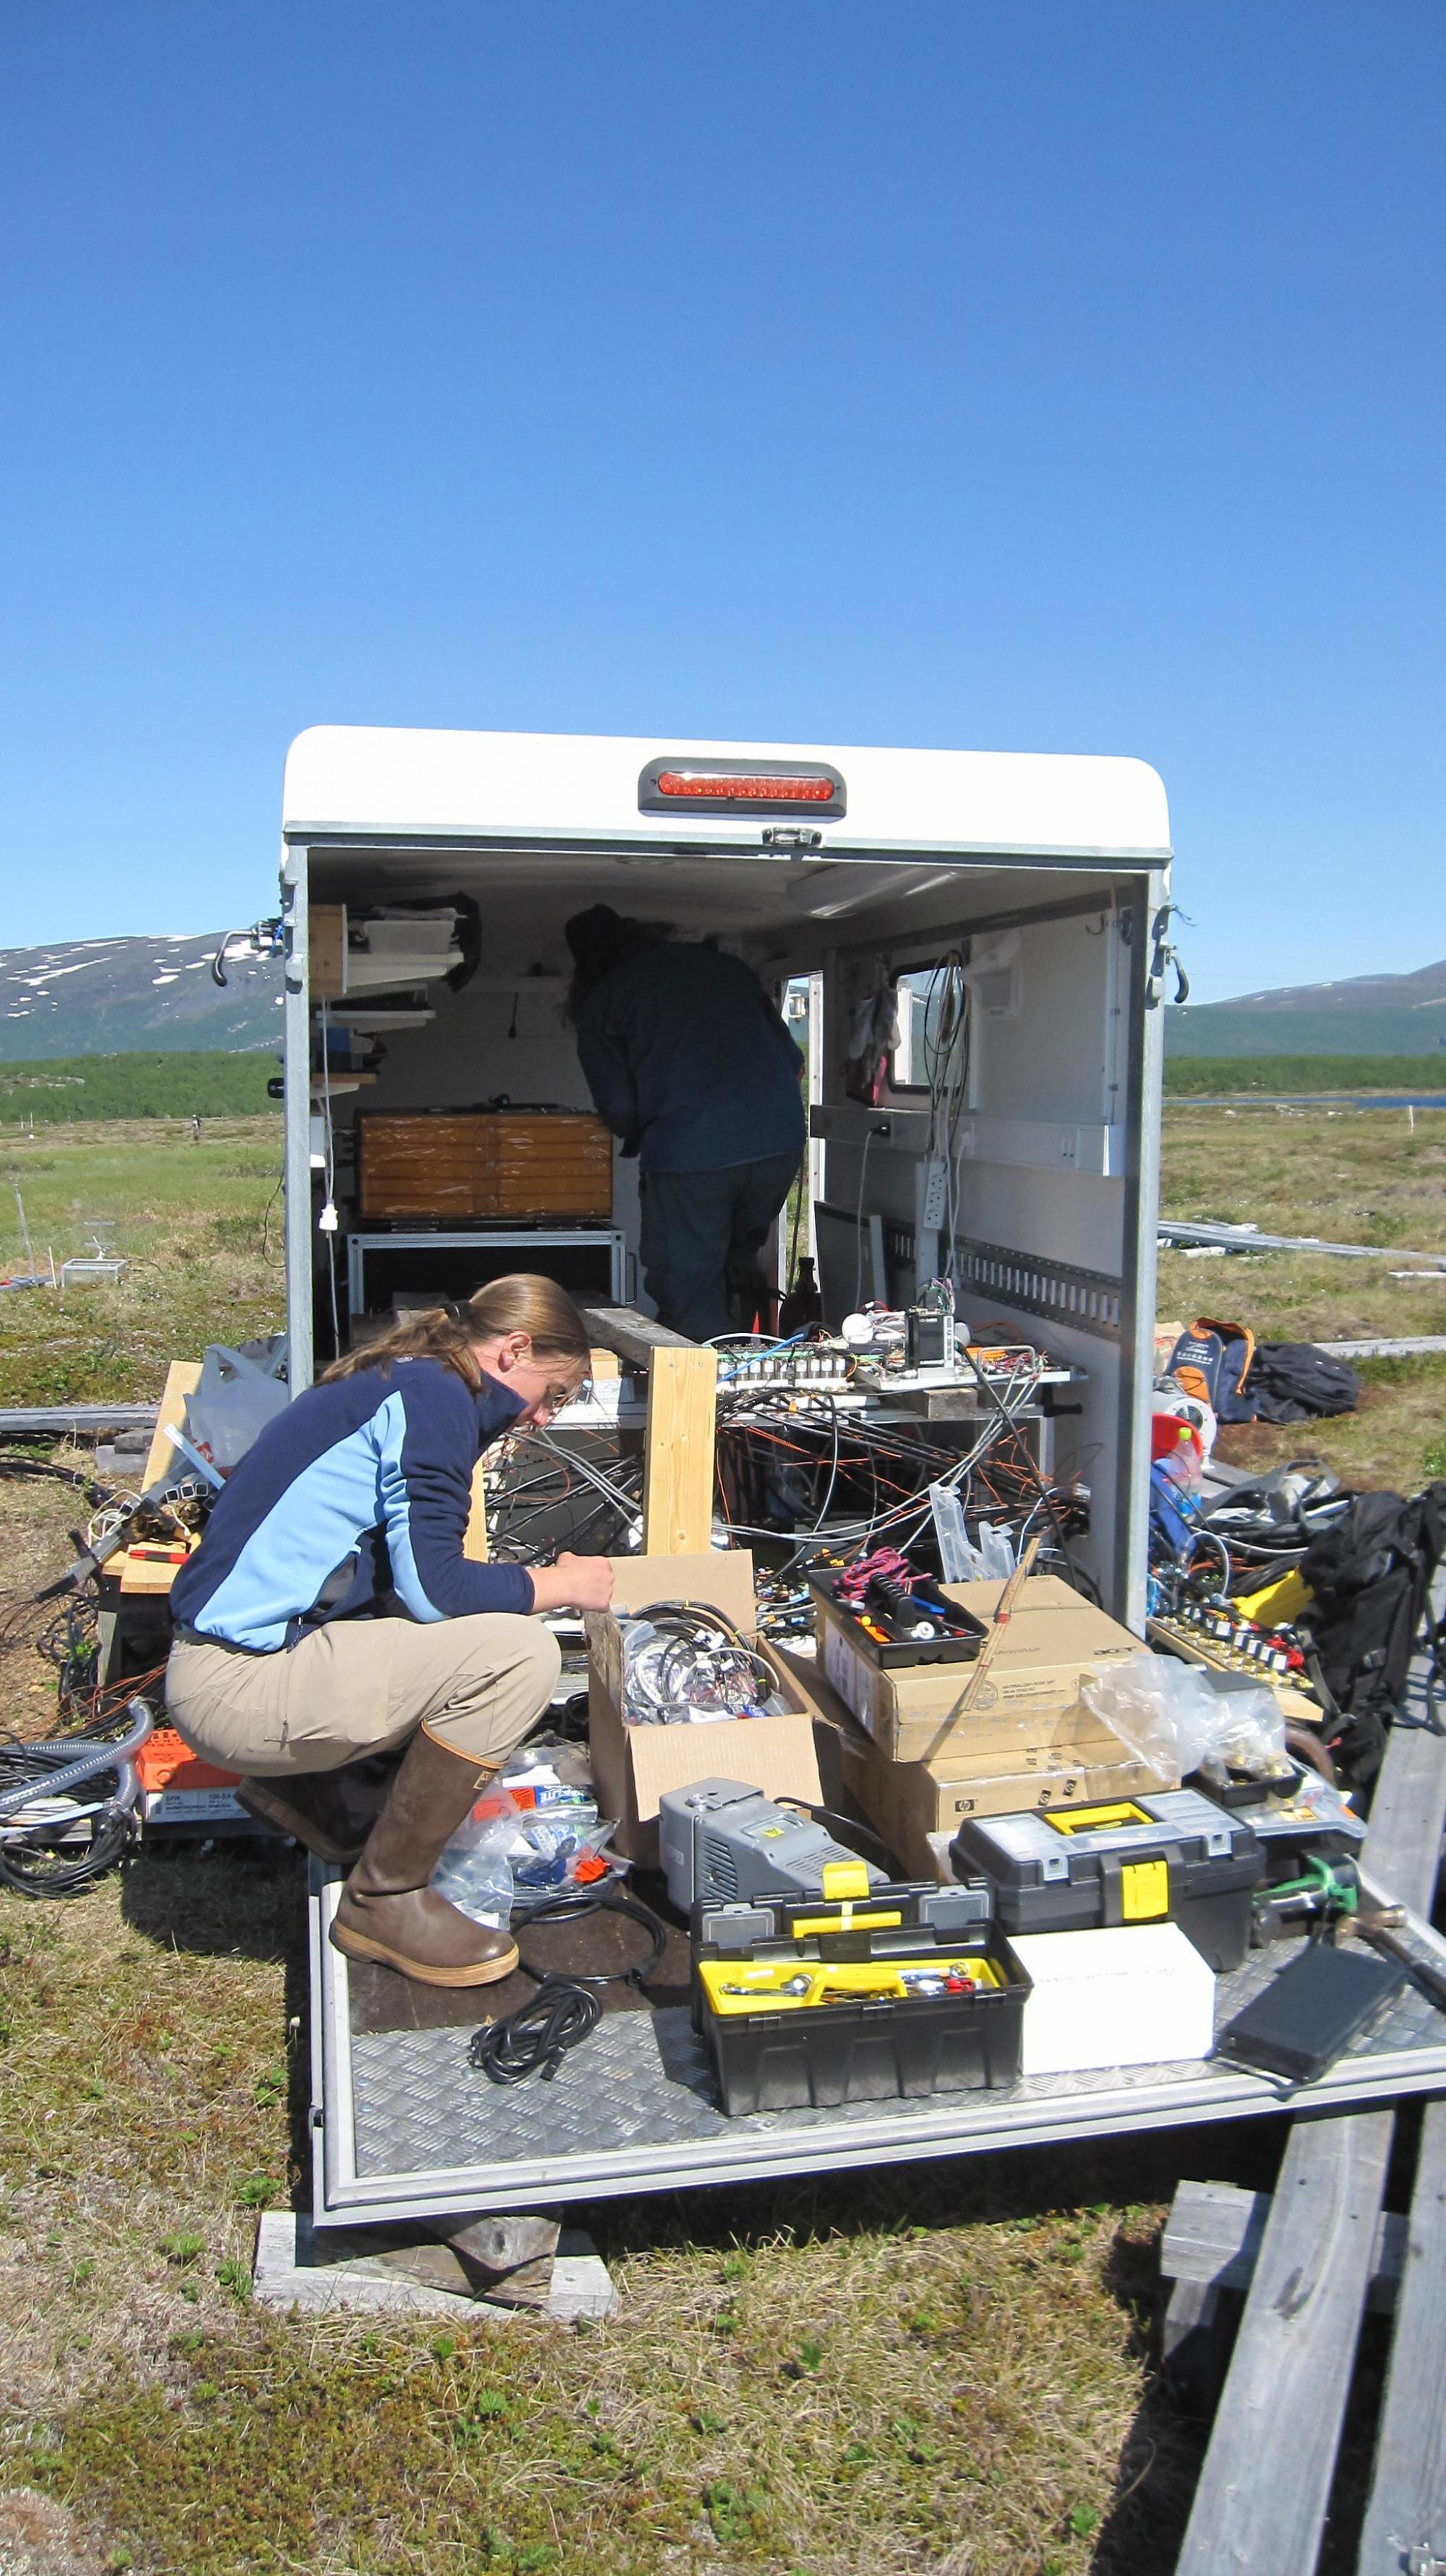 Carmody McCalley, a postdoctoral researcher in Saleska's group, installs equipment to measure the production of greenhouse gases by soil microbes.